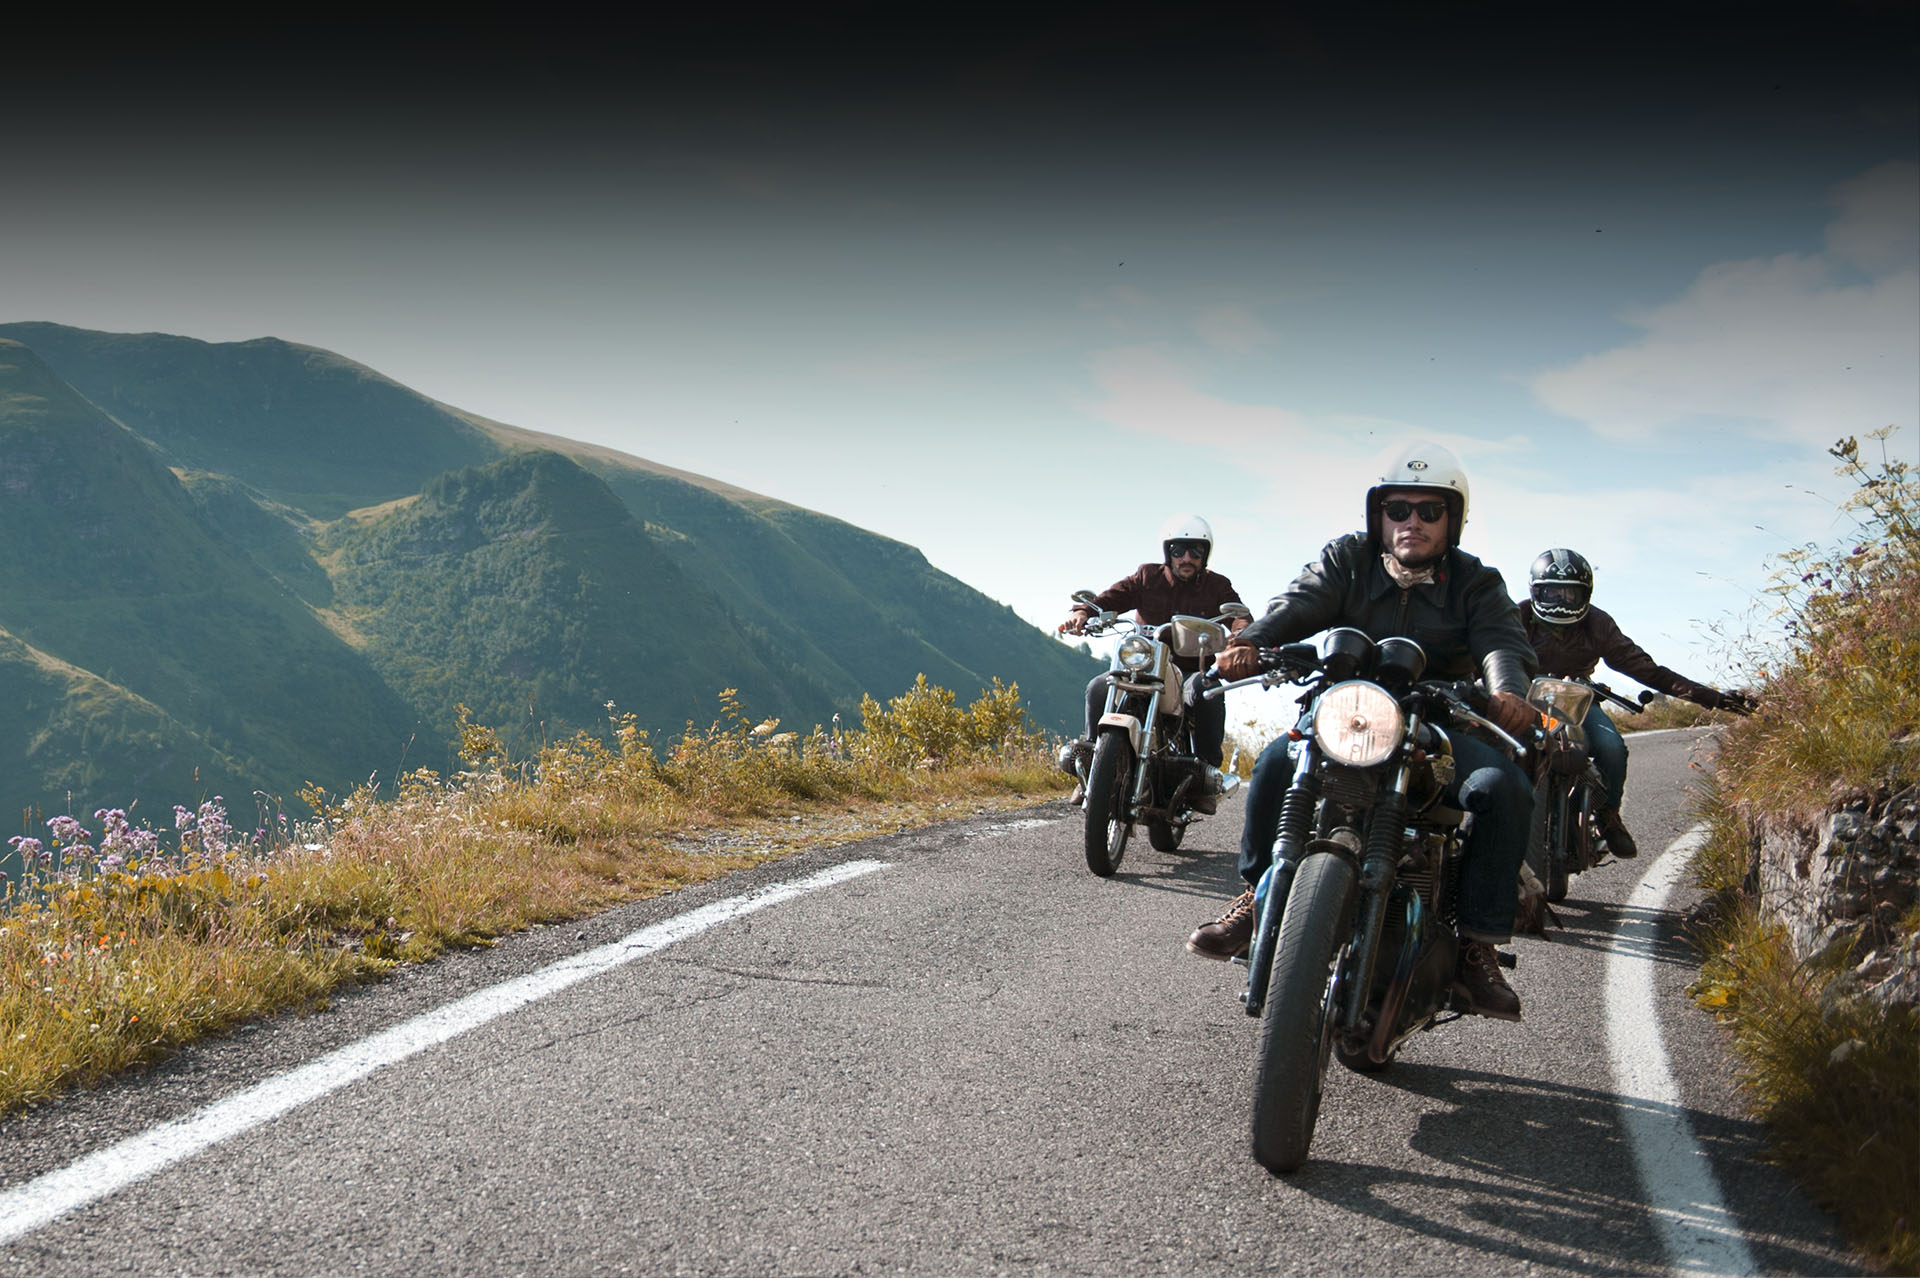 shangri-la-heritage-slider-passo-crocedomini-leather-jackets-roadtrip